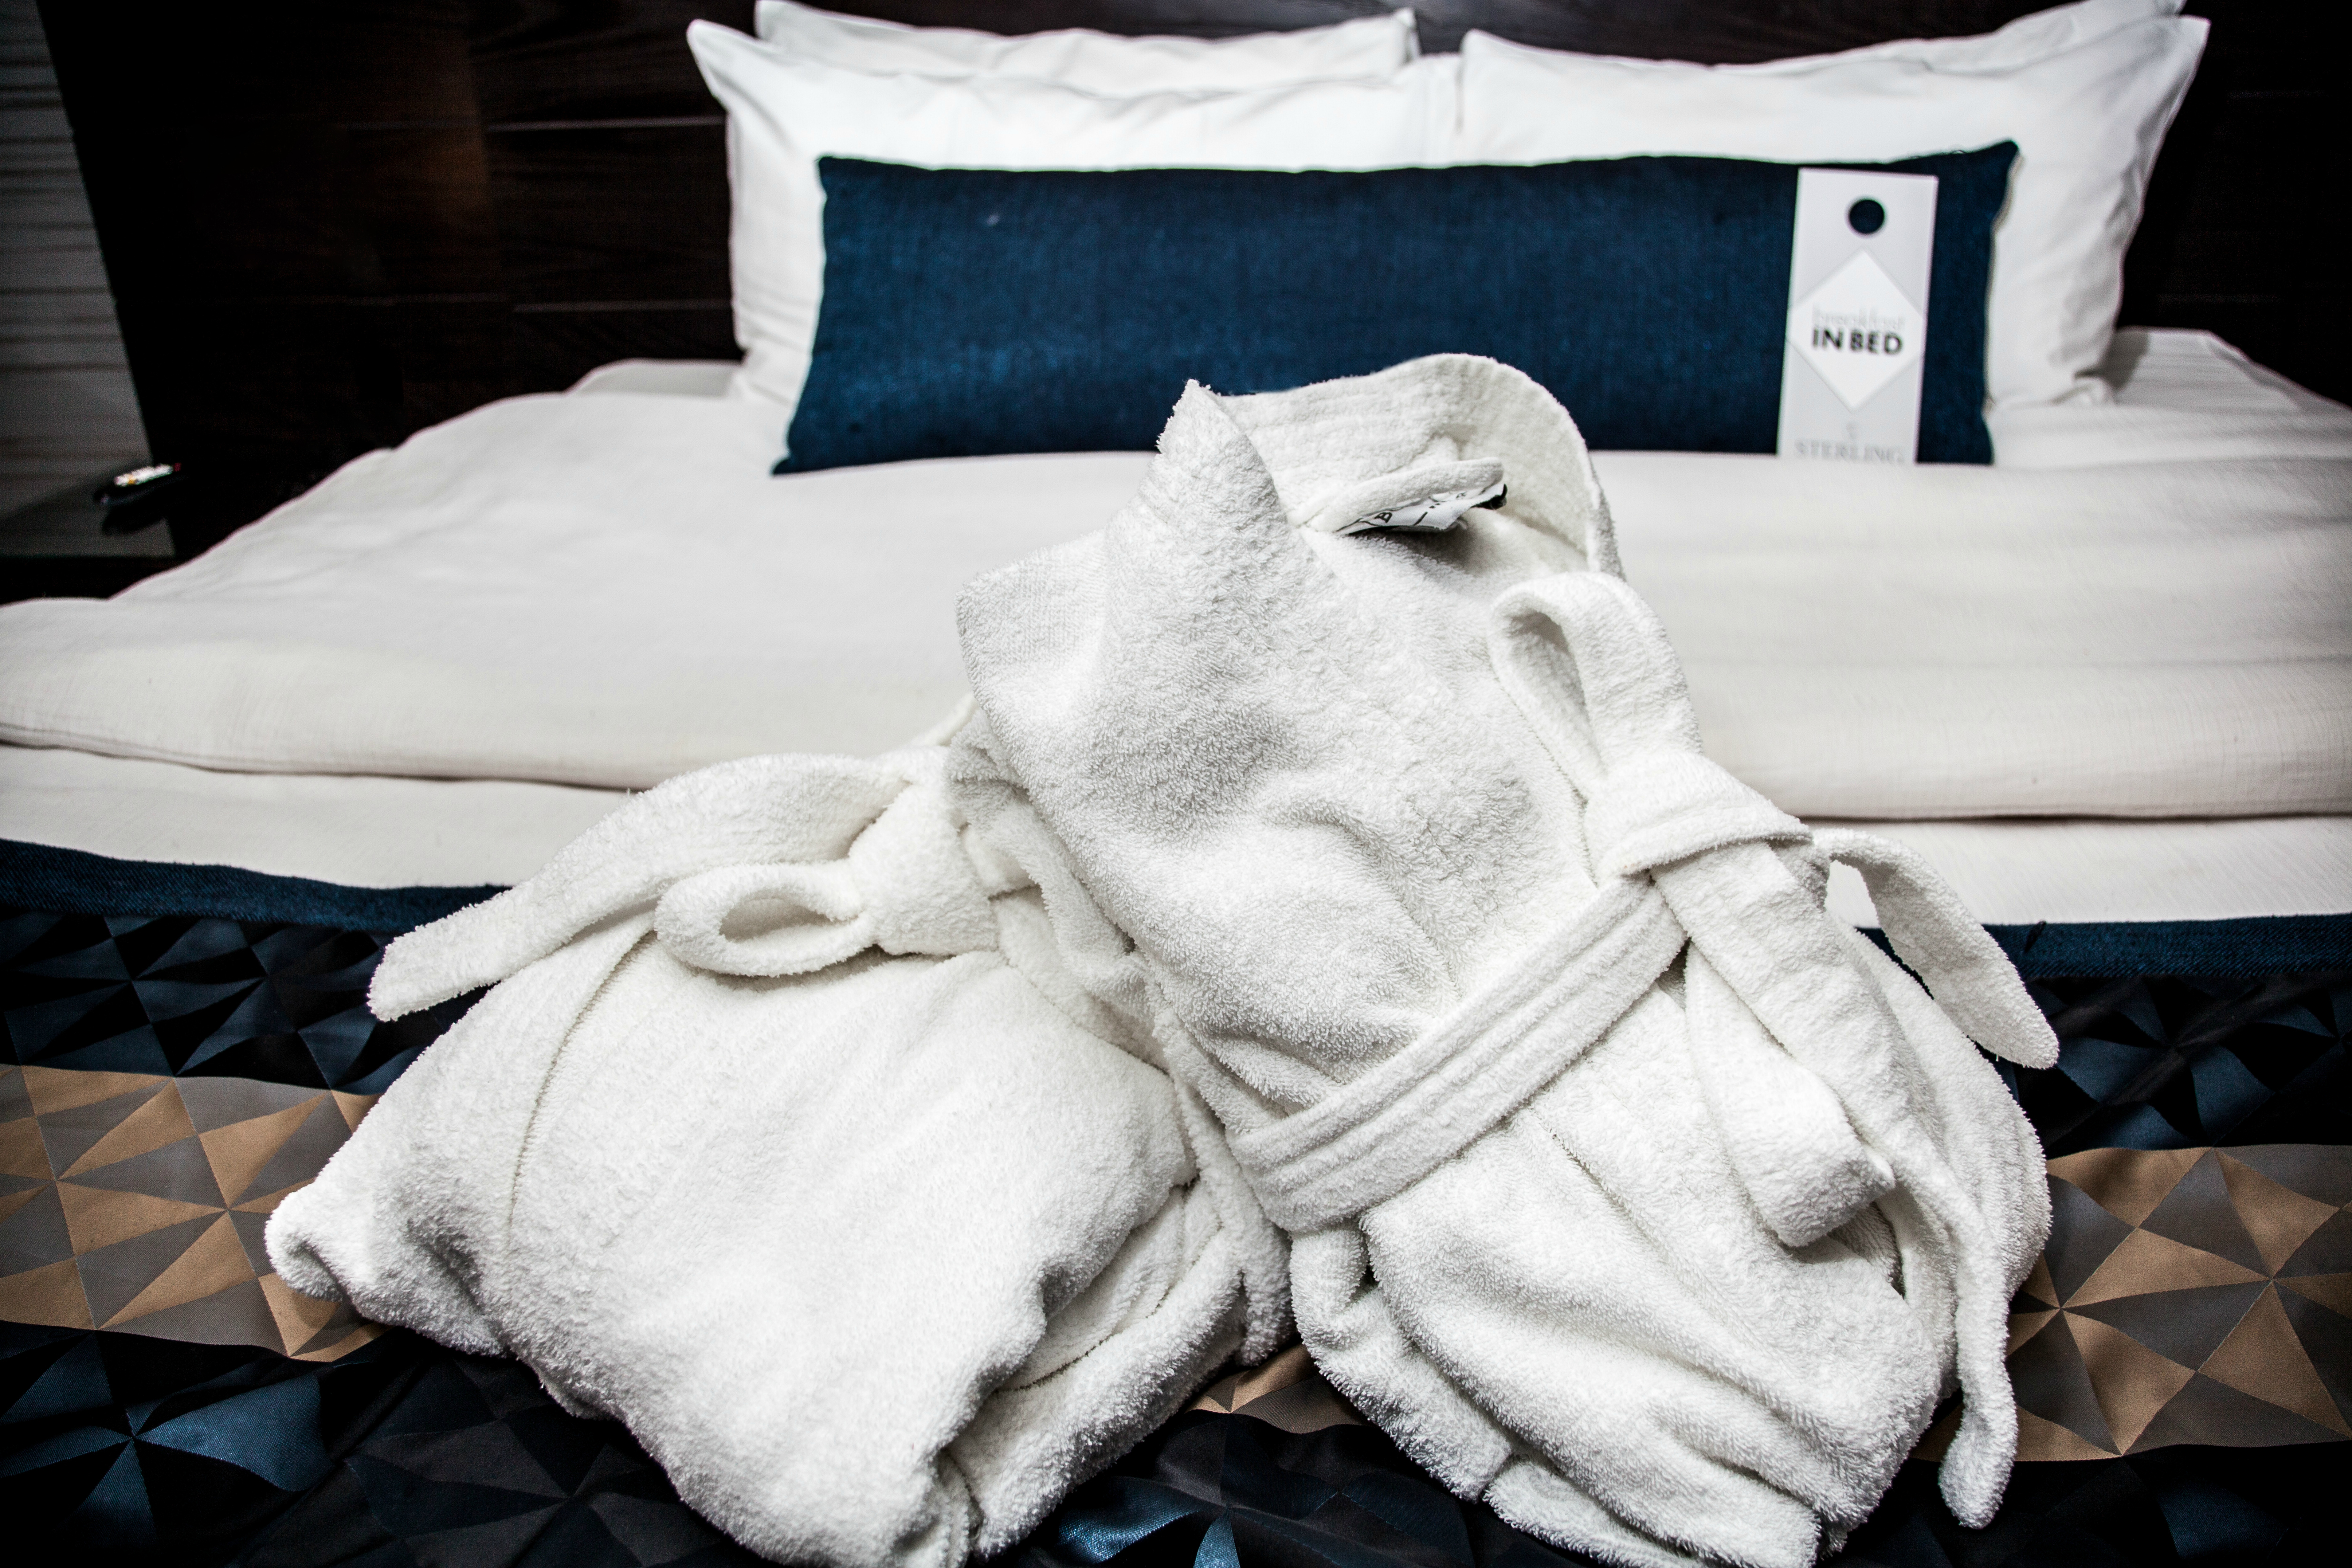 Robes on Bed - Sterling Inn & Spa